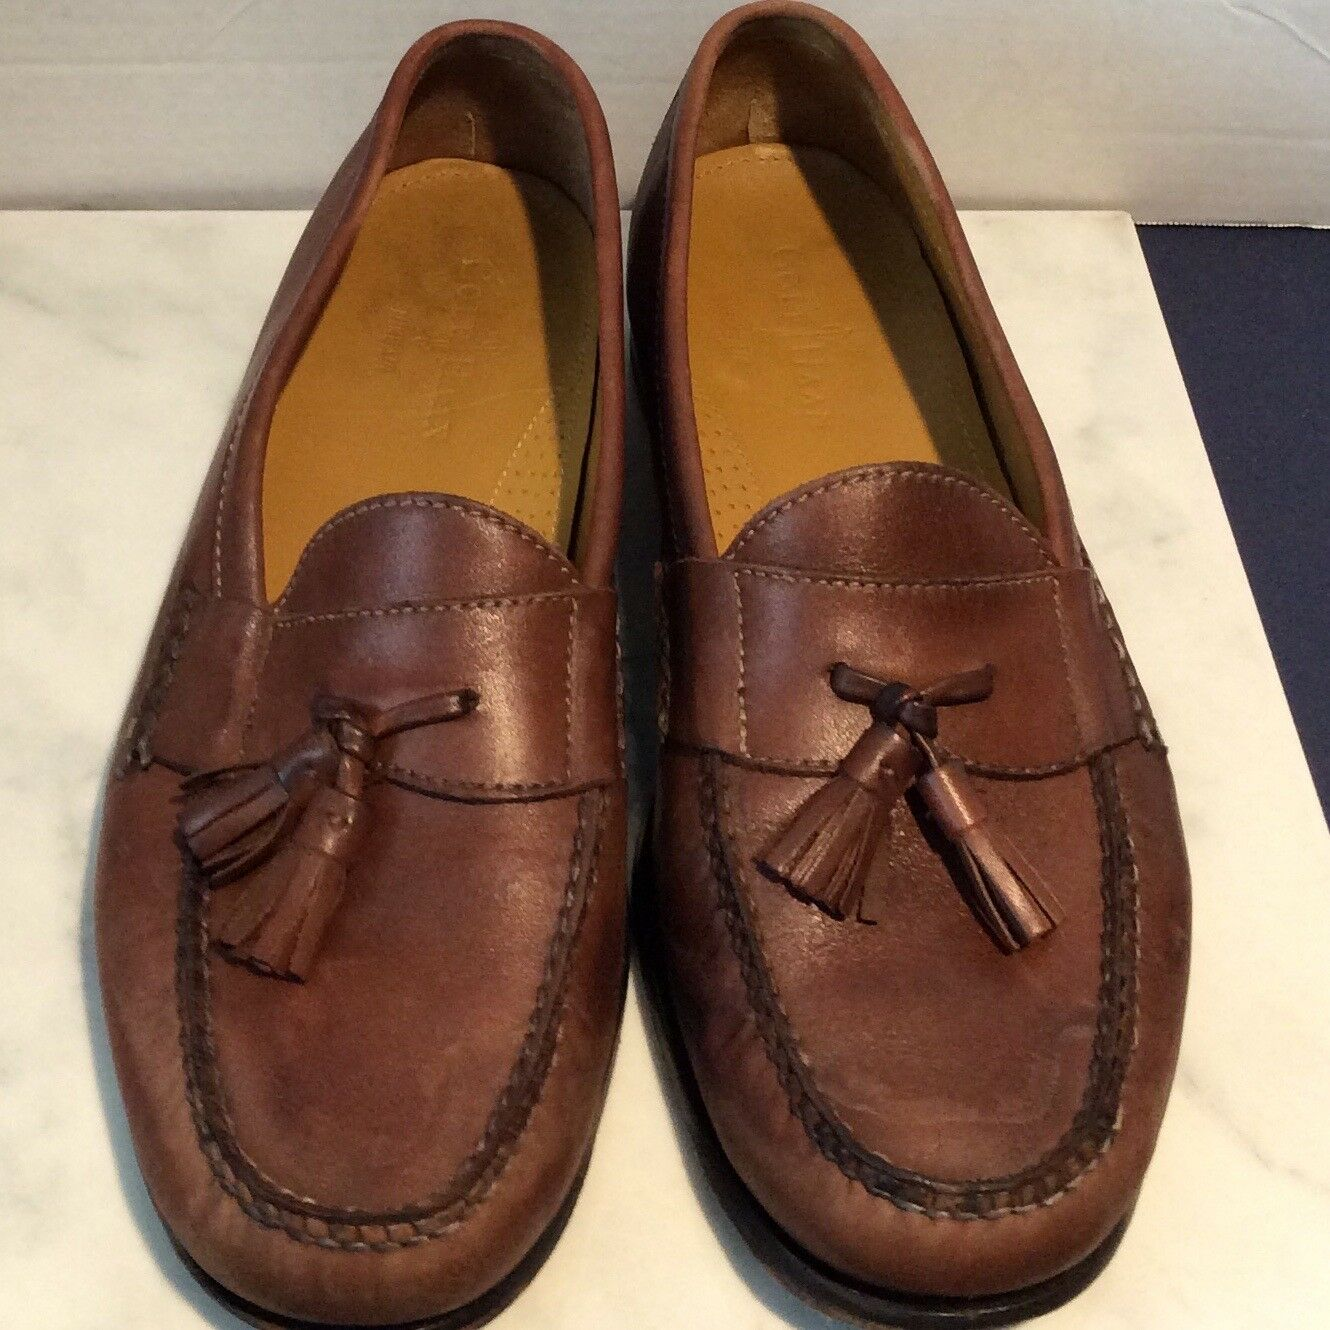 COLE HAAN Mens Size 10 Brown British Leather Tassle Loafers shoes